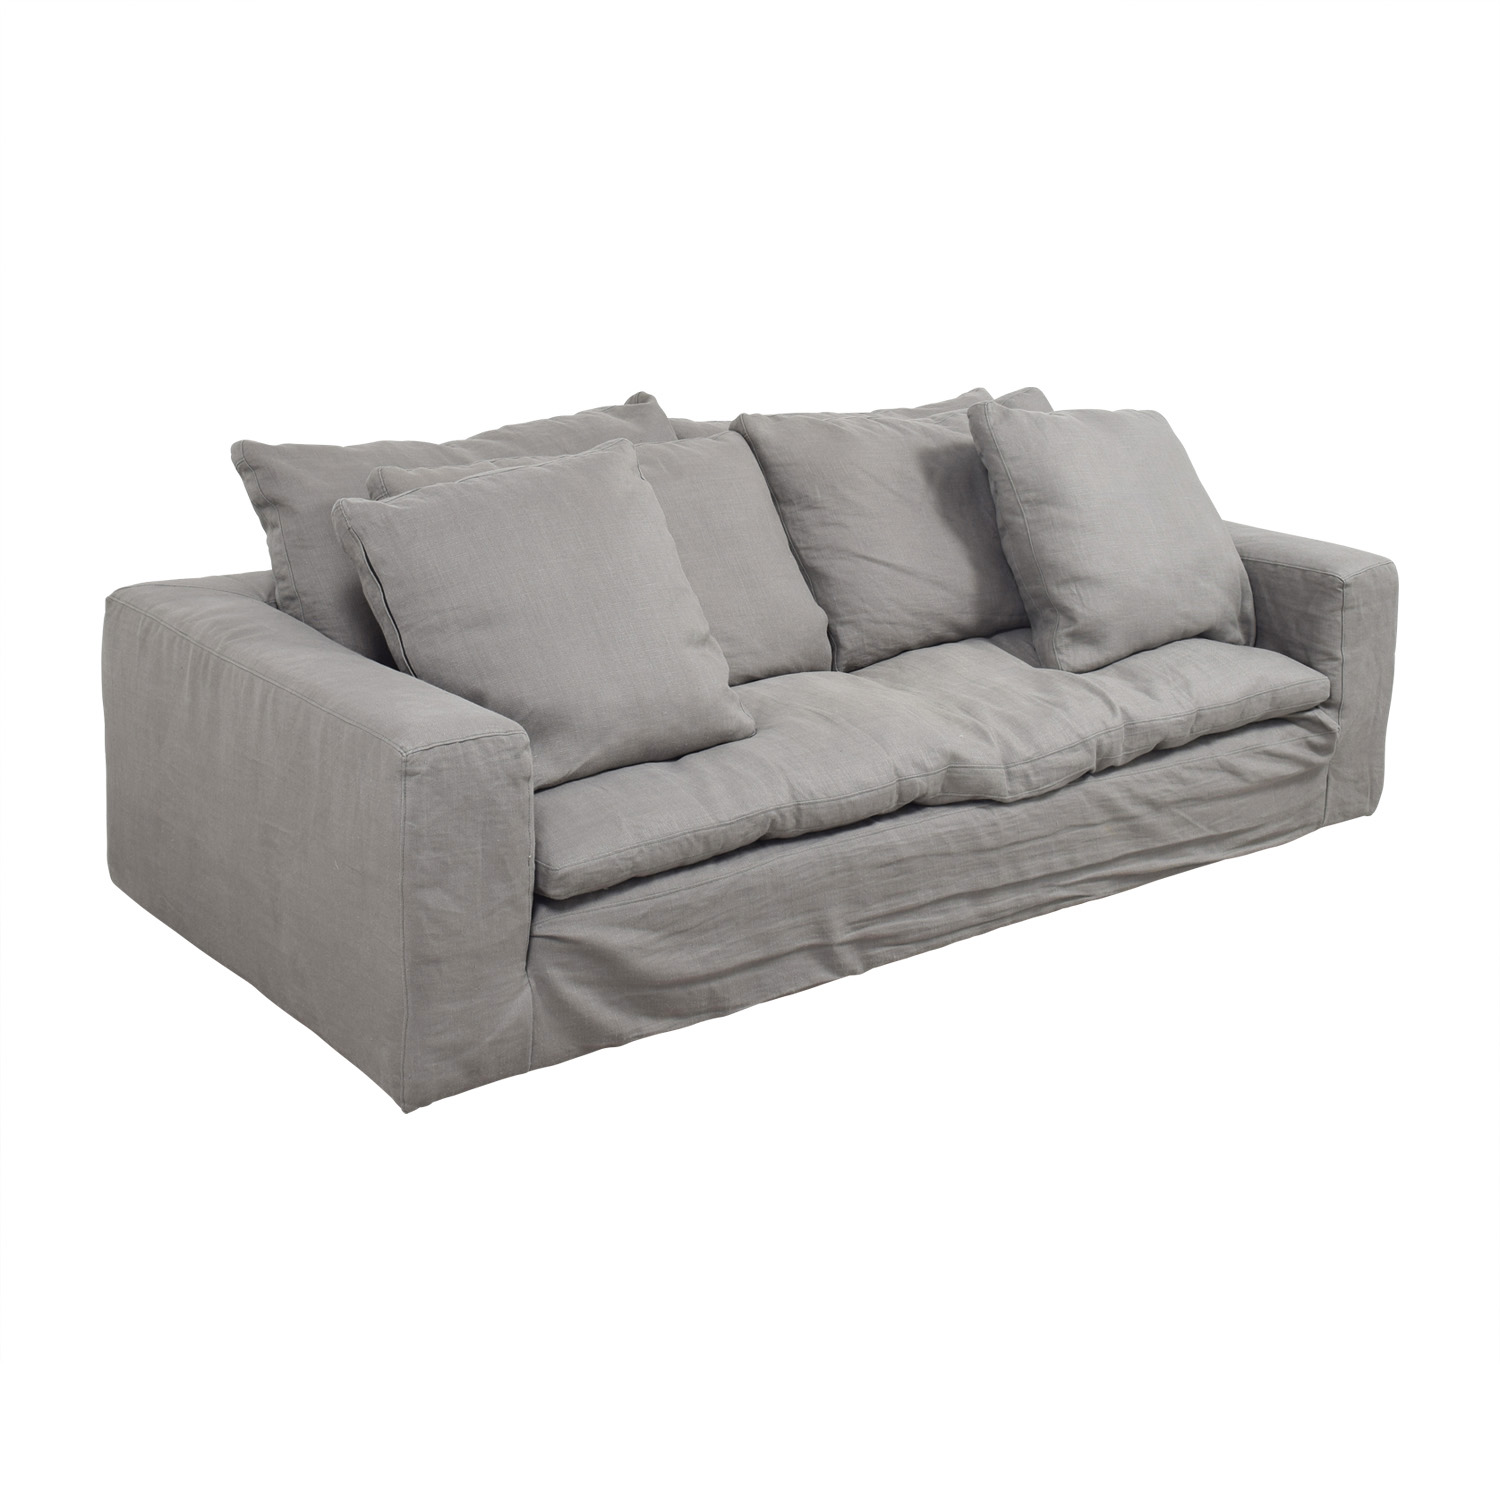 82 off restoration hardware restoration hardware grey for Second hand sofas